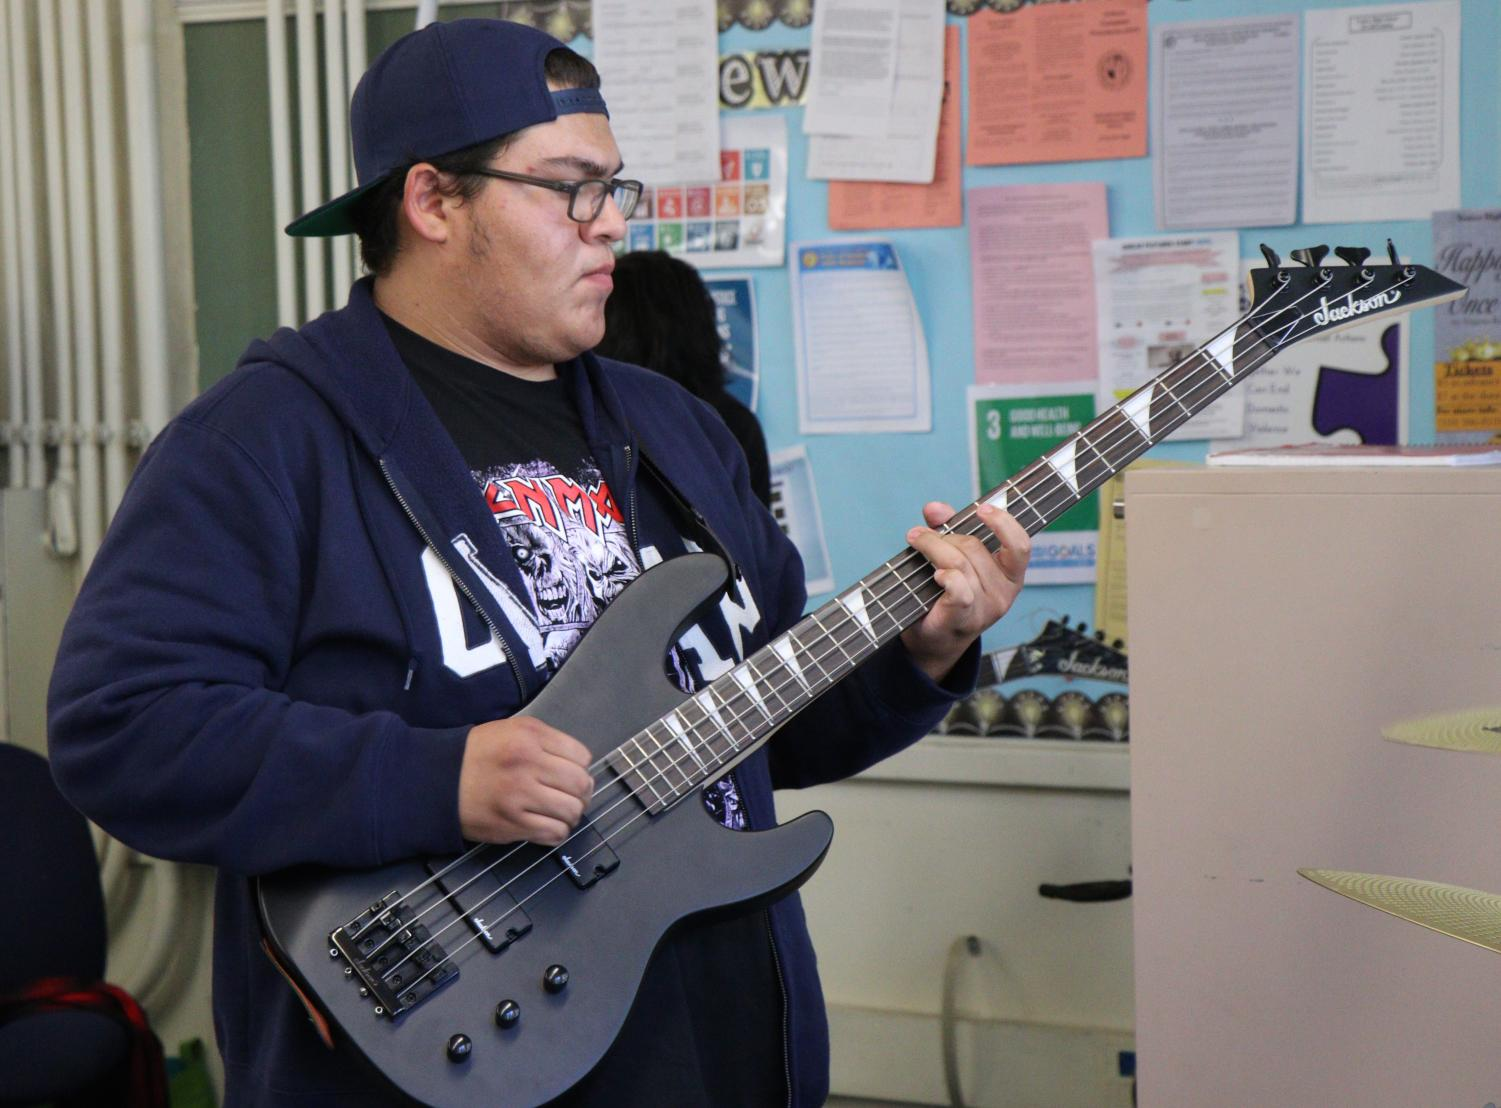 Bassist plays during Rock Band Club practice.